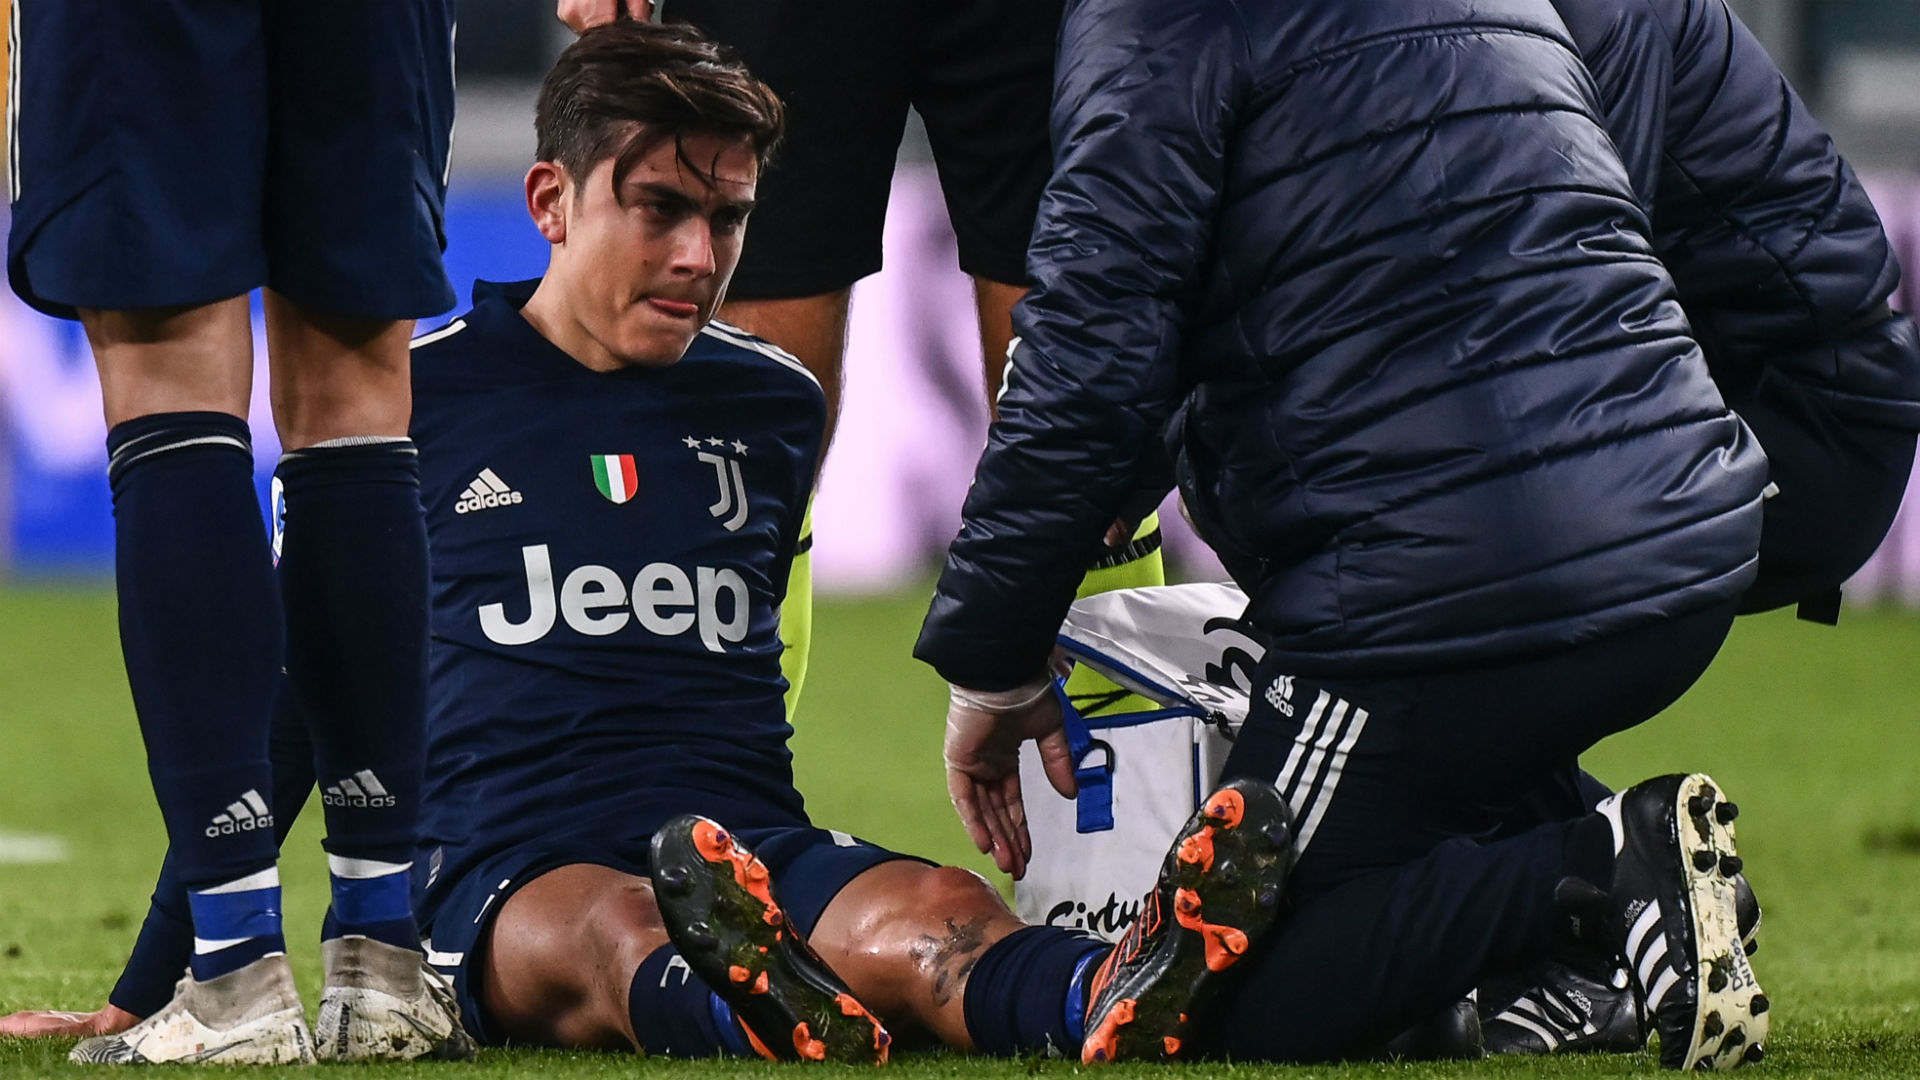 Dybala may have suffered ligament damage after being forced off against Sassuolo, says Juventus manager Pirlo